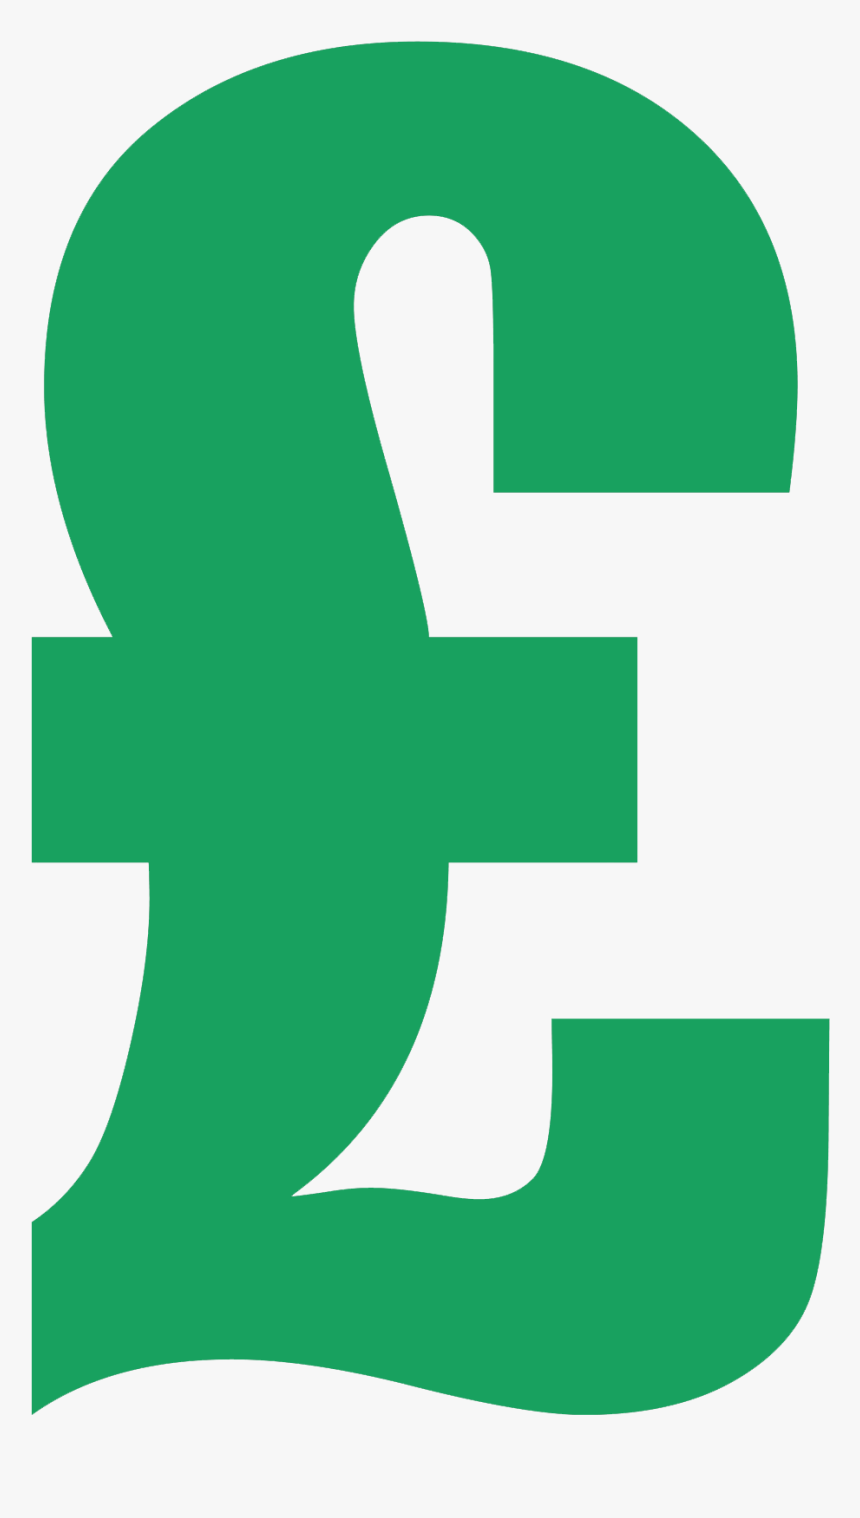 Transparent Pound Sign Png - Green Pound Sign, Png Download, Free Download